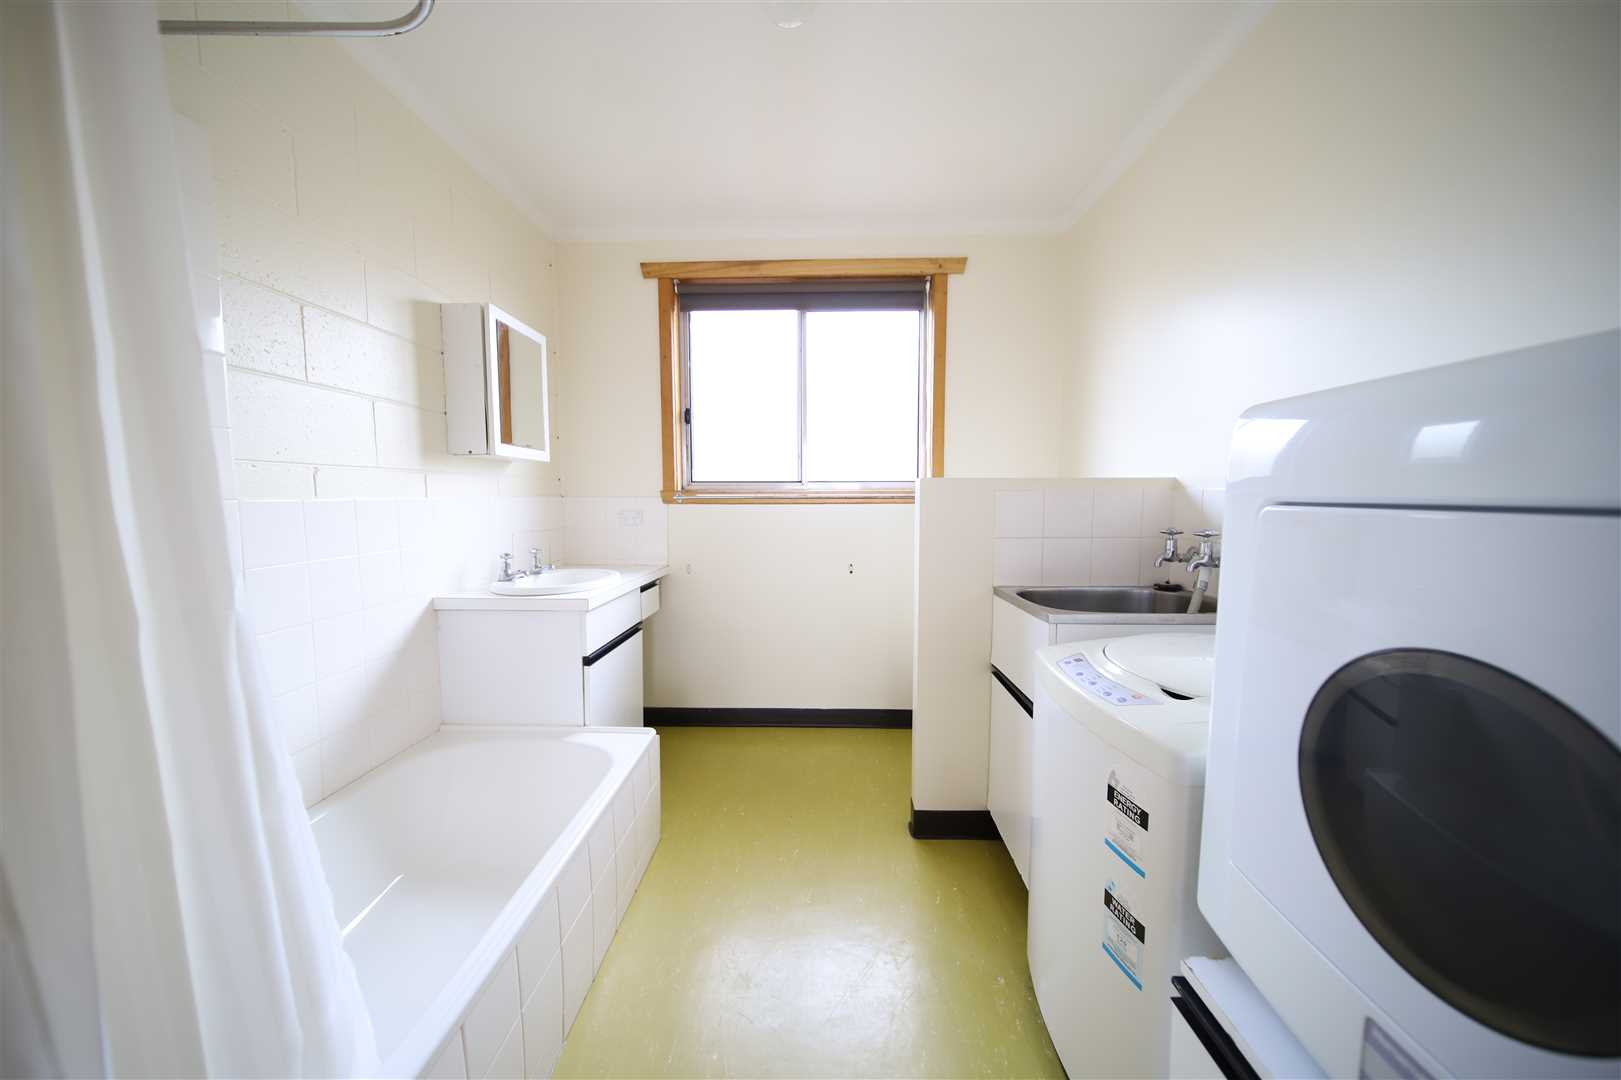 Bathroom/Laundry Unit 1